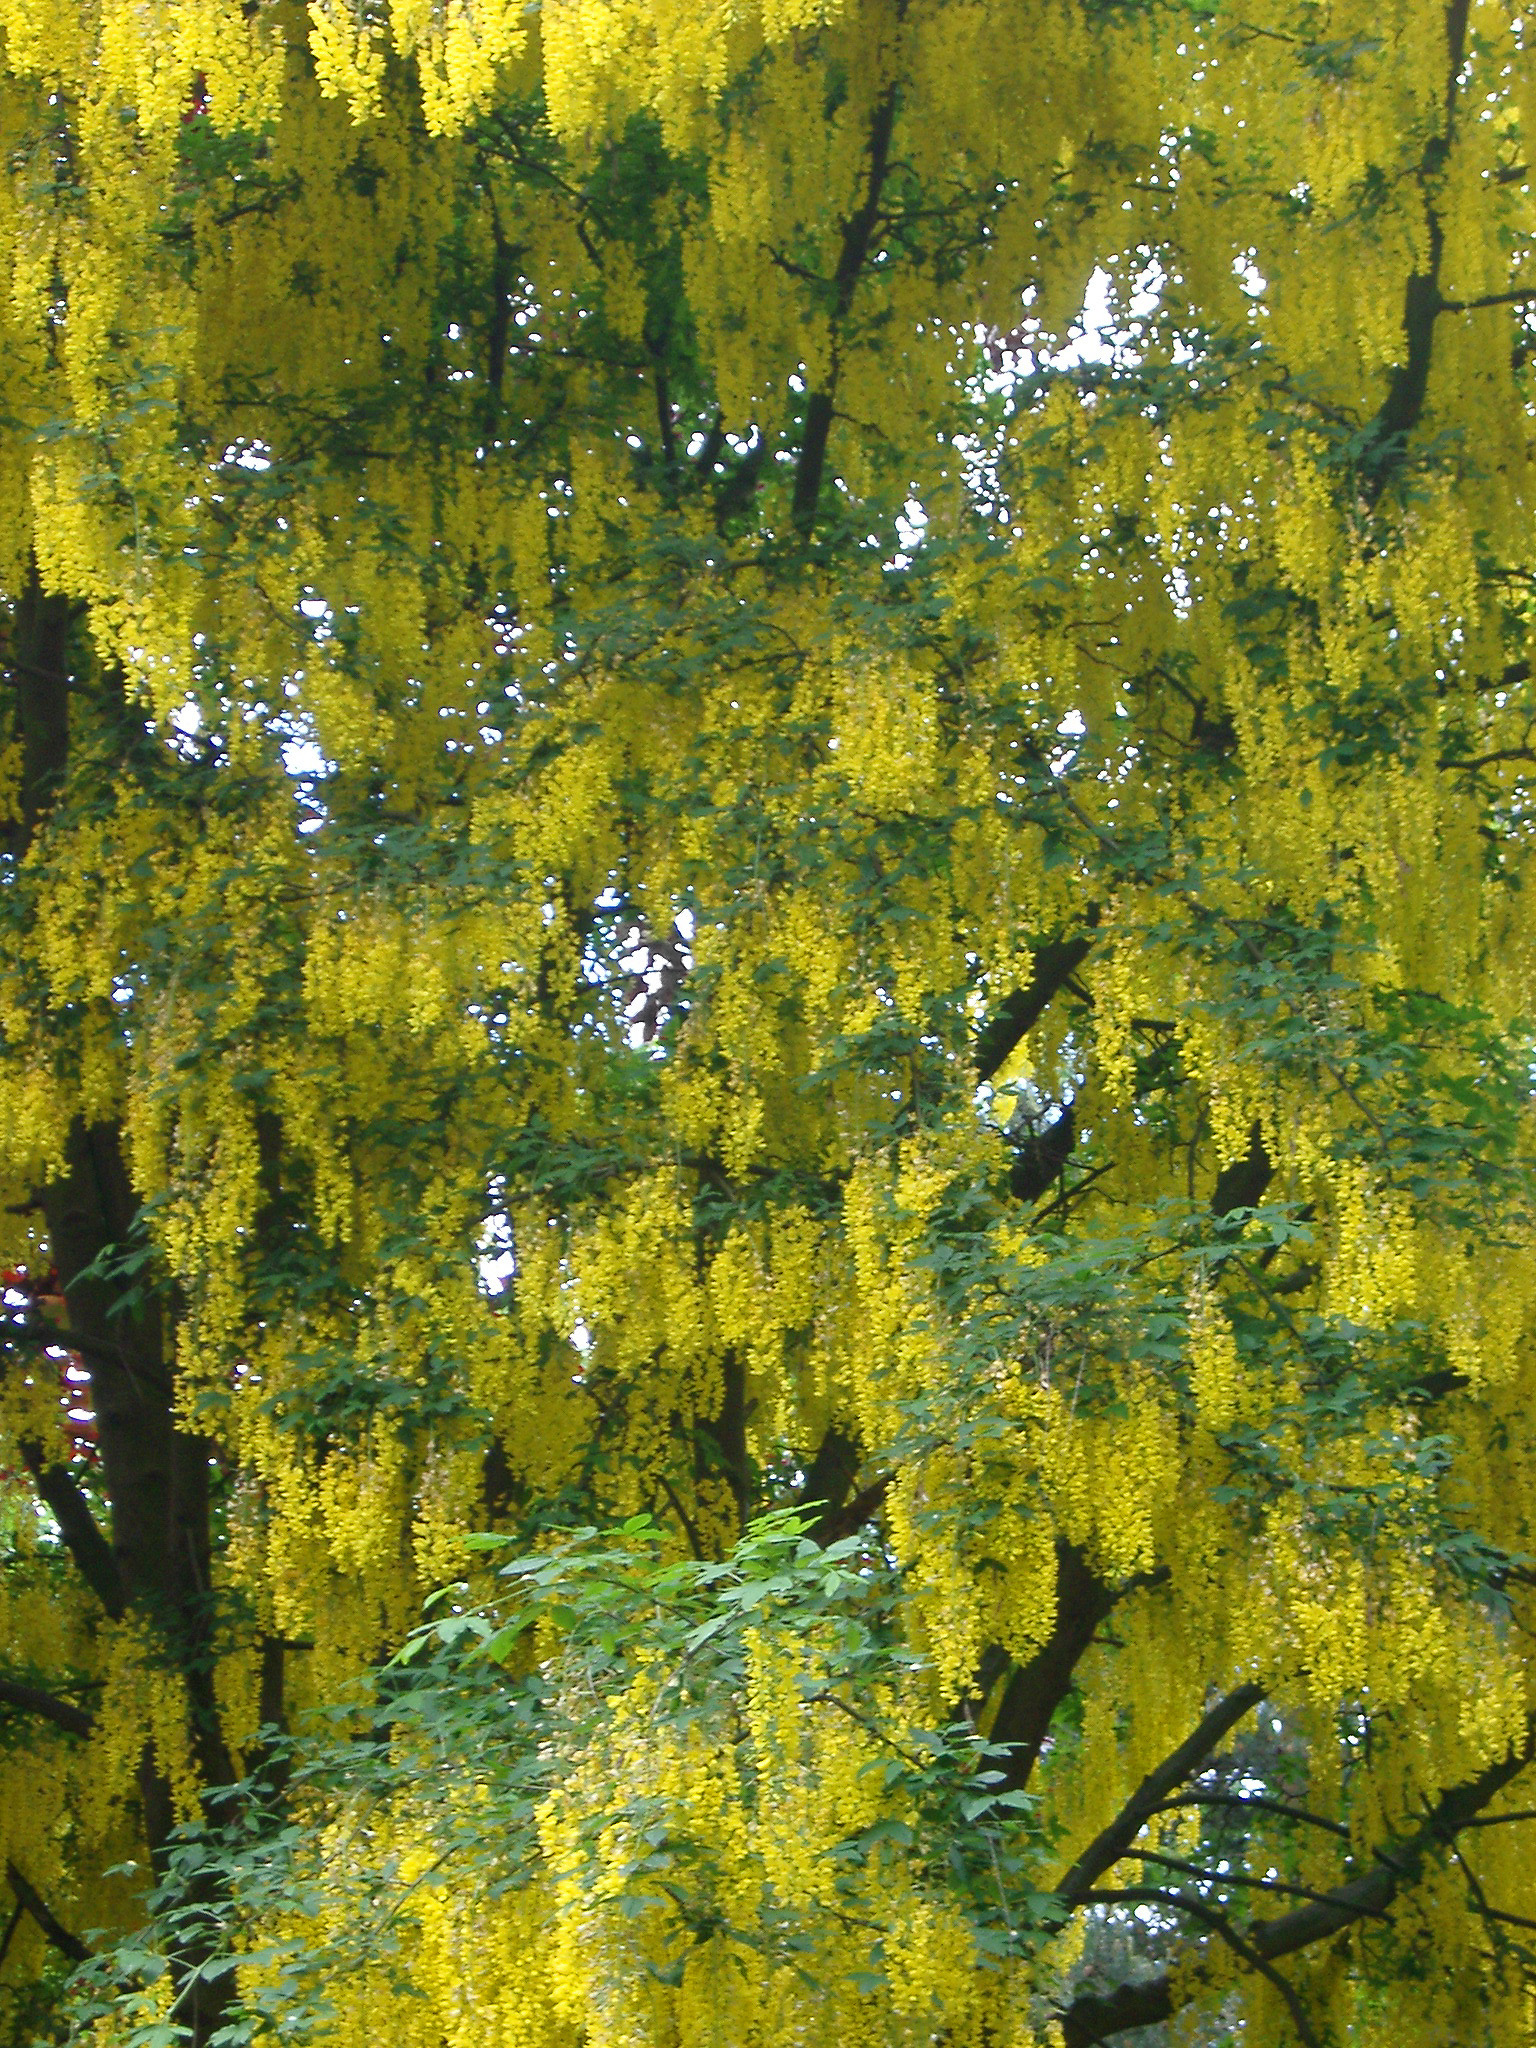 Free Stock Photo Of Laburnum Tree In Flower Photoeverywhere